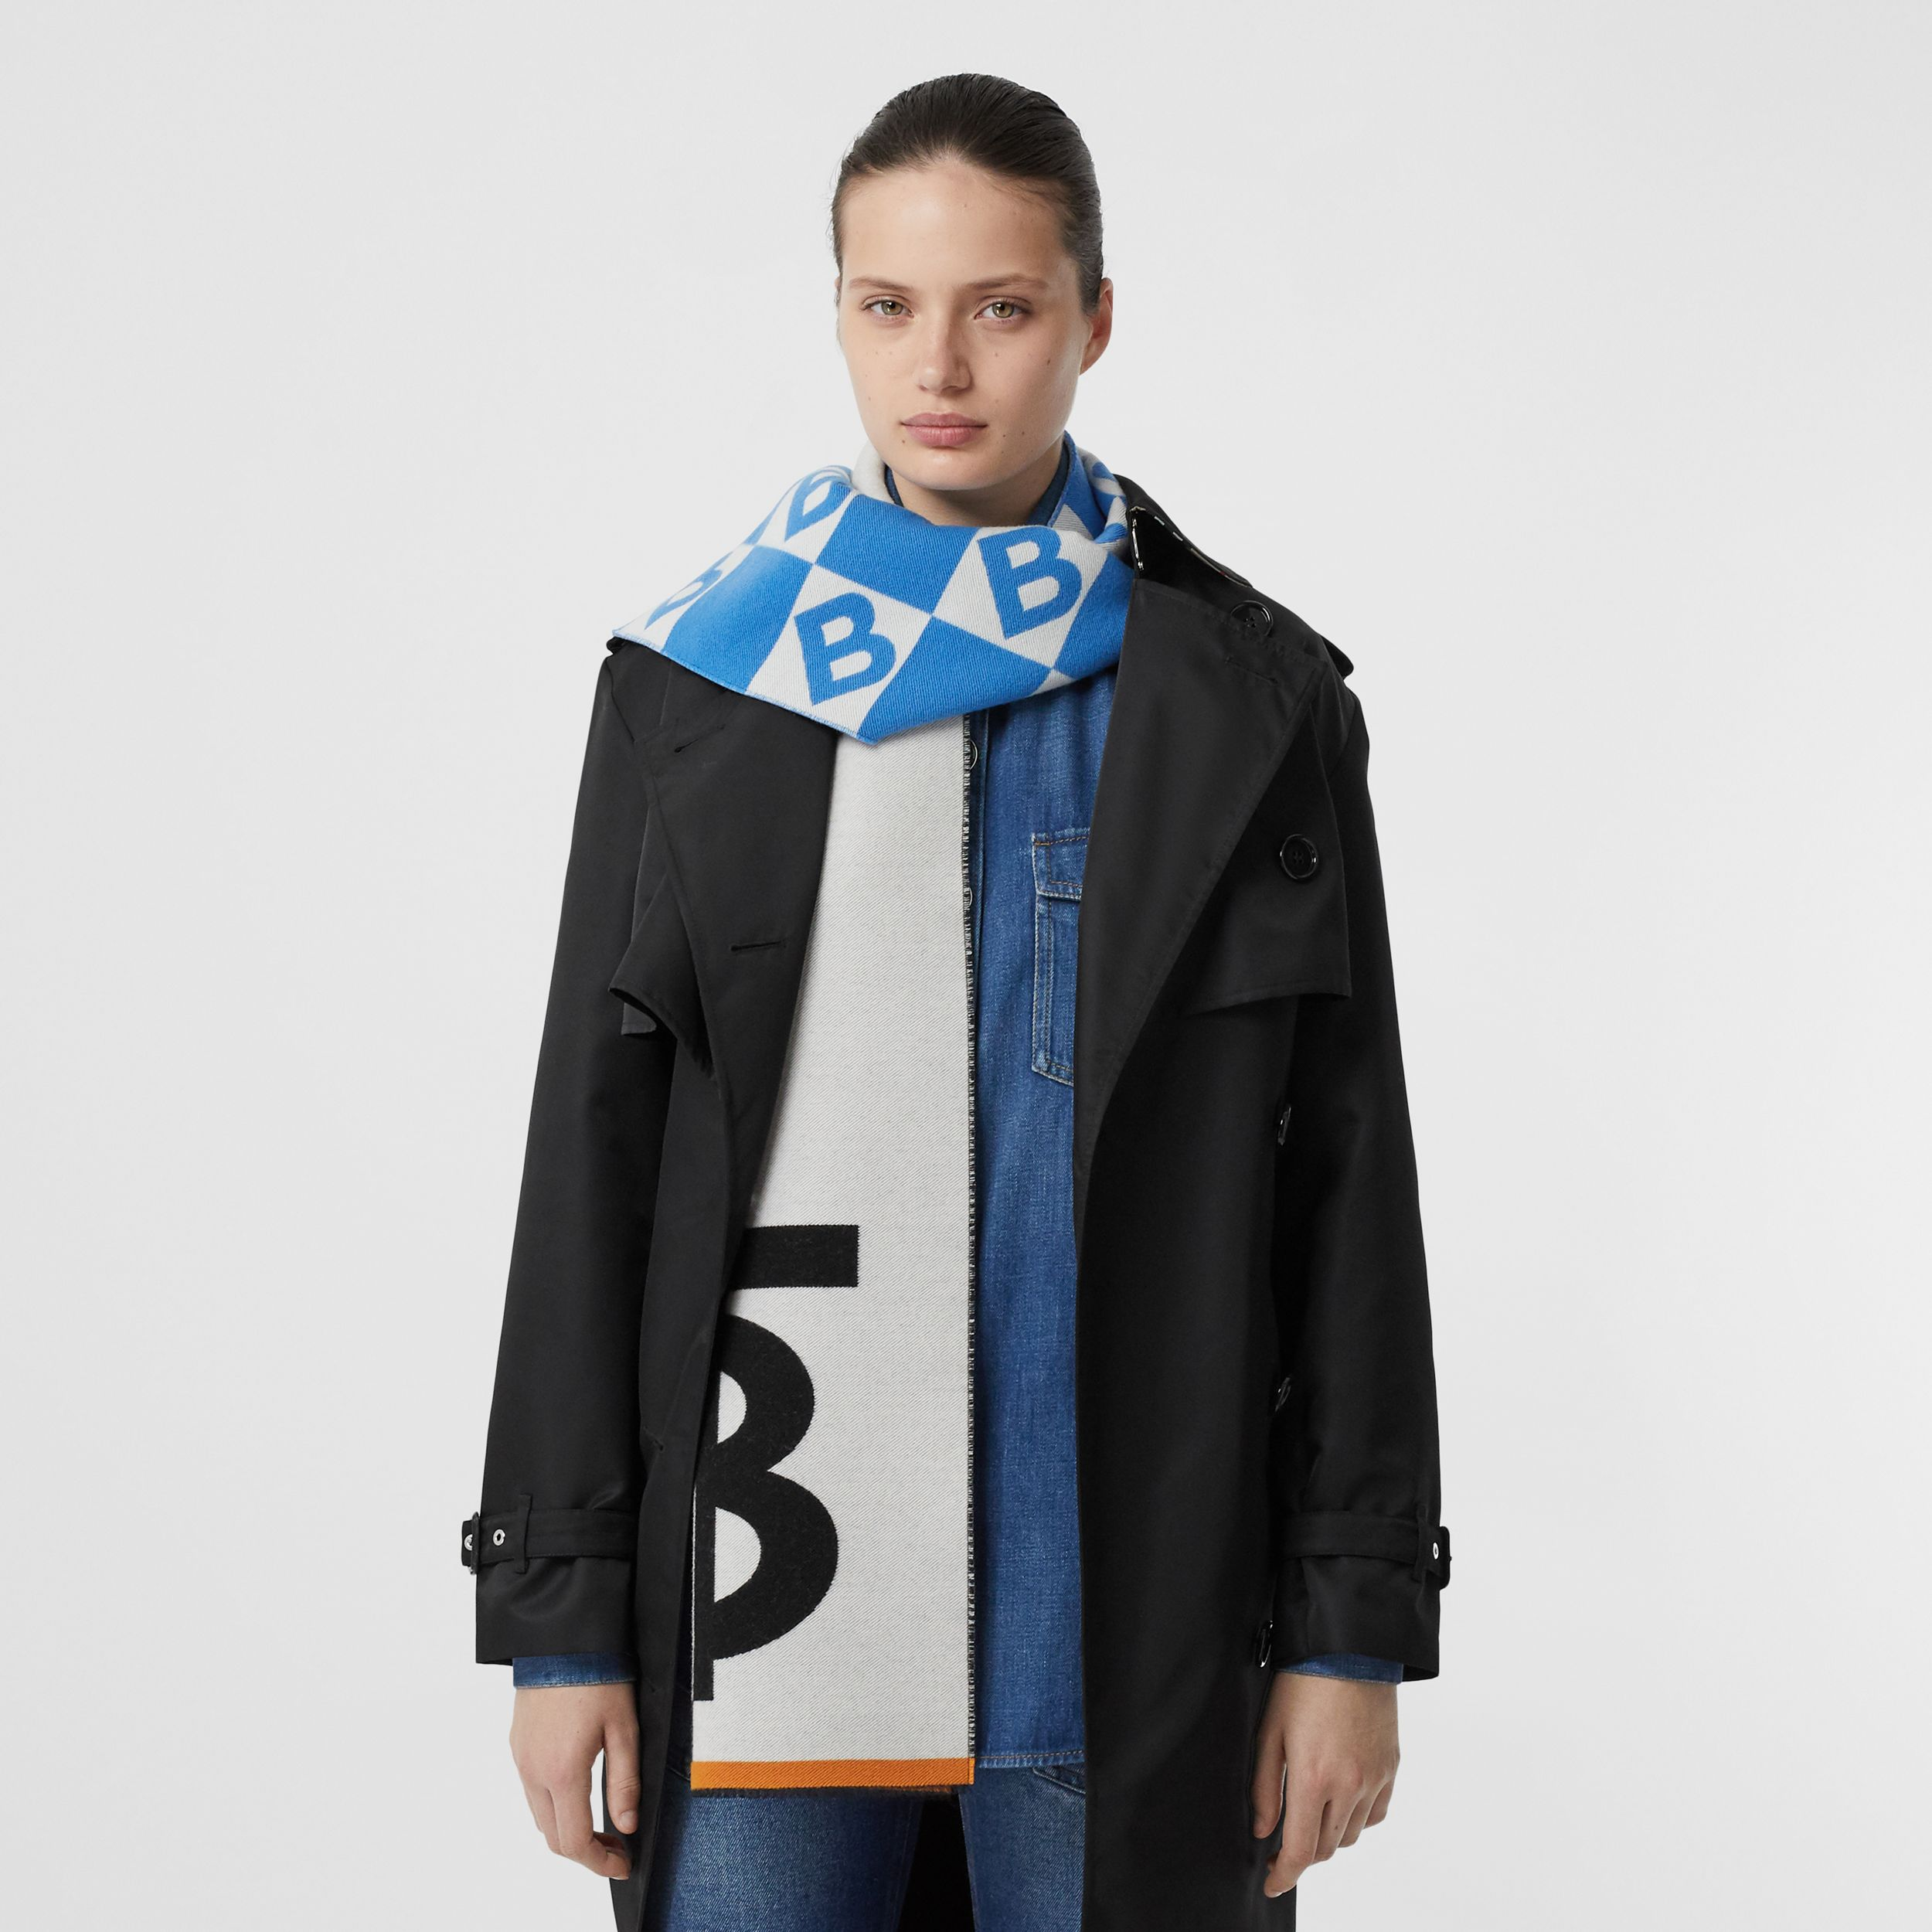 Contrast Logo Graphic Wool Silk Jacquard Scarf in Azure Blue | Burberry - 3